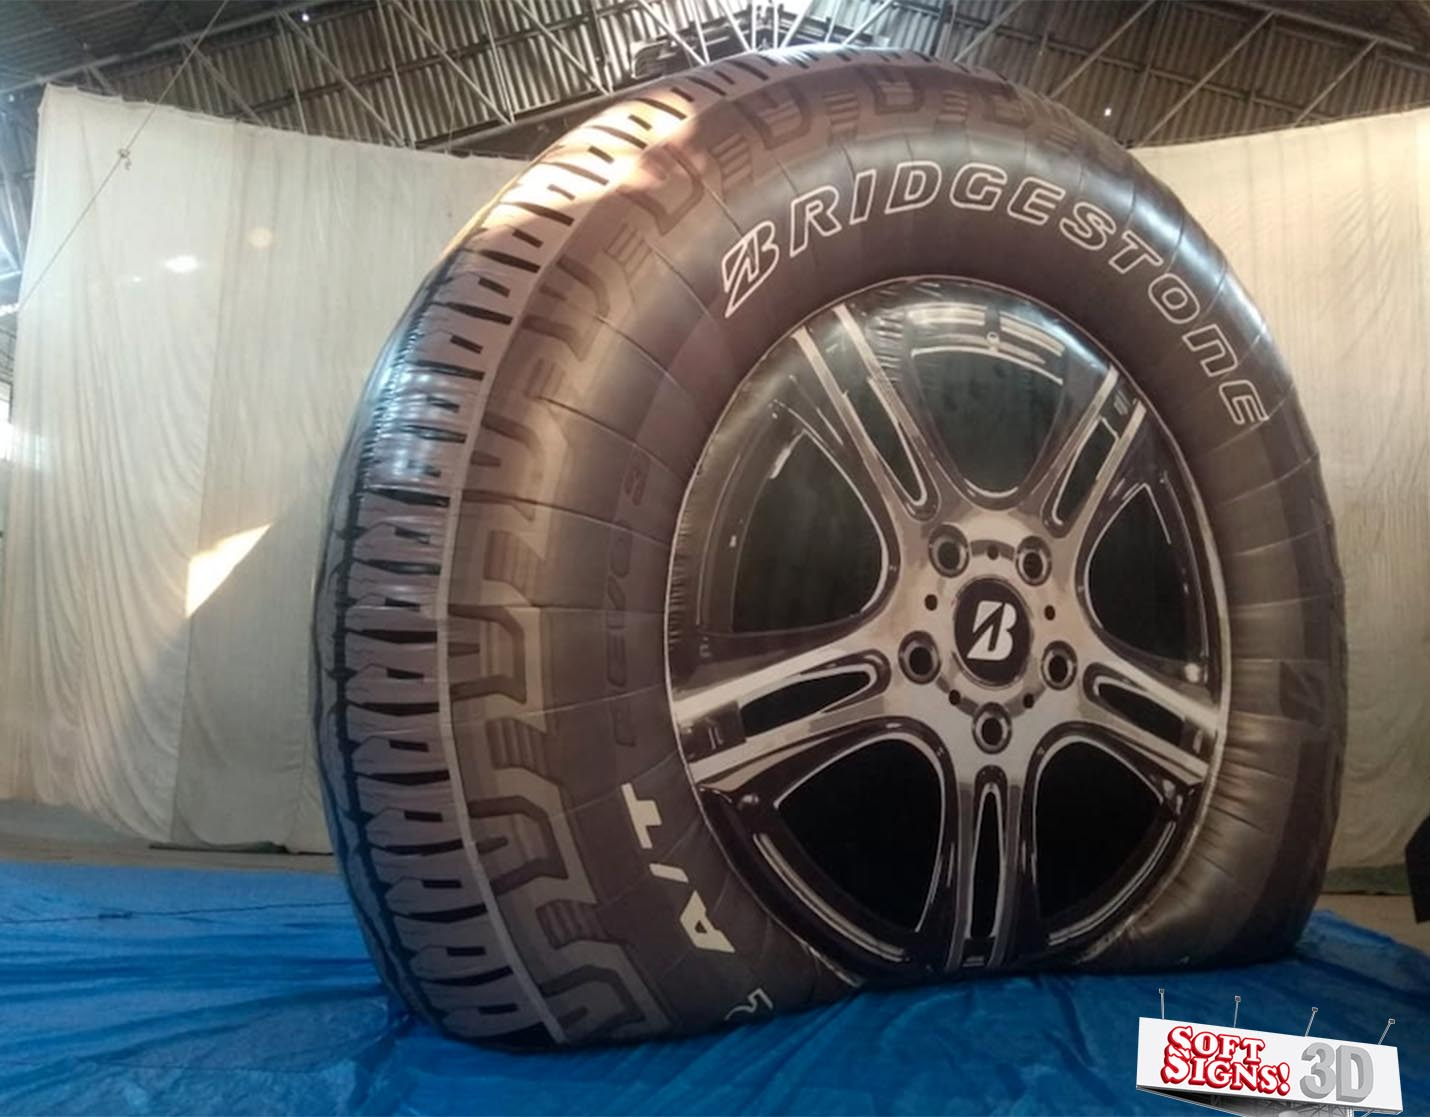 Bridgestone Tire 3D Air Sculpture